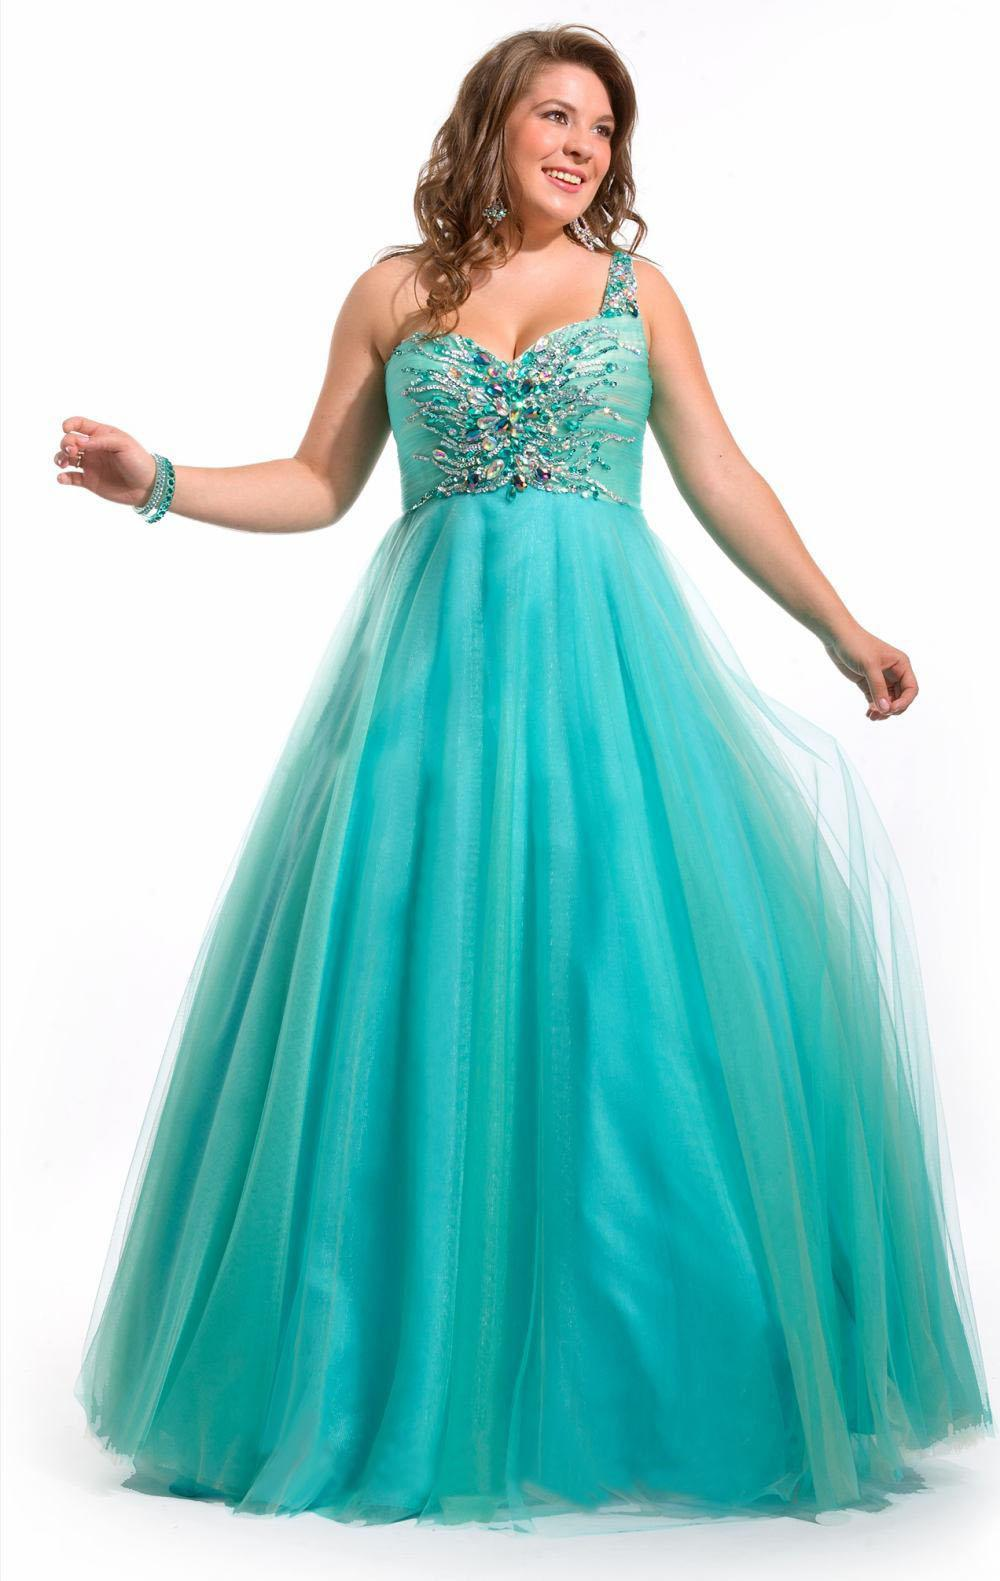 plus size military ball gowns - Sizing